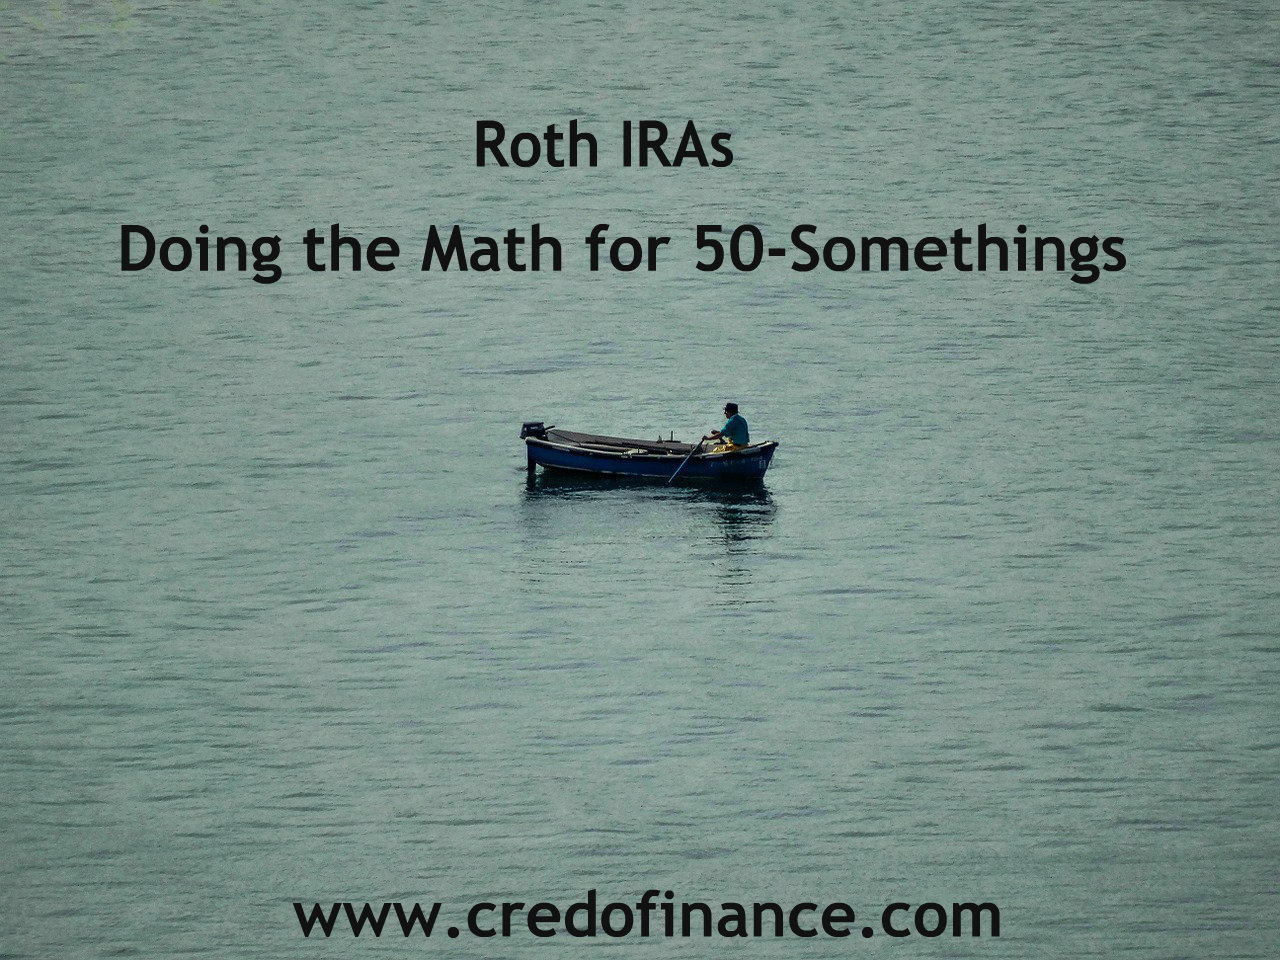 Roth IRAs – Doing the Math for 50-Somethings